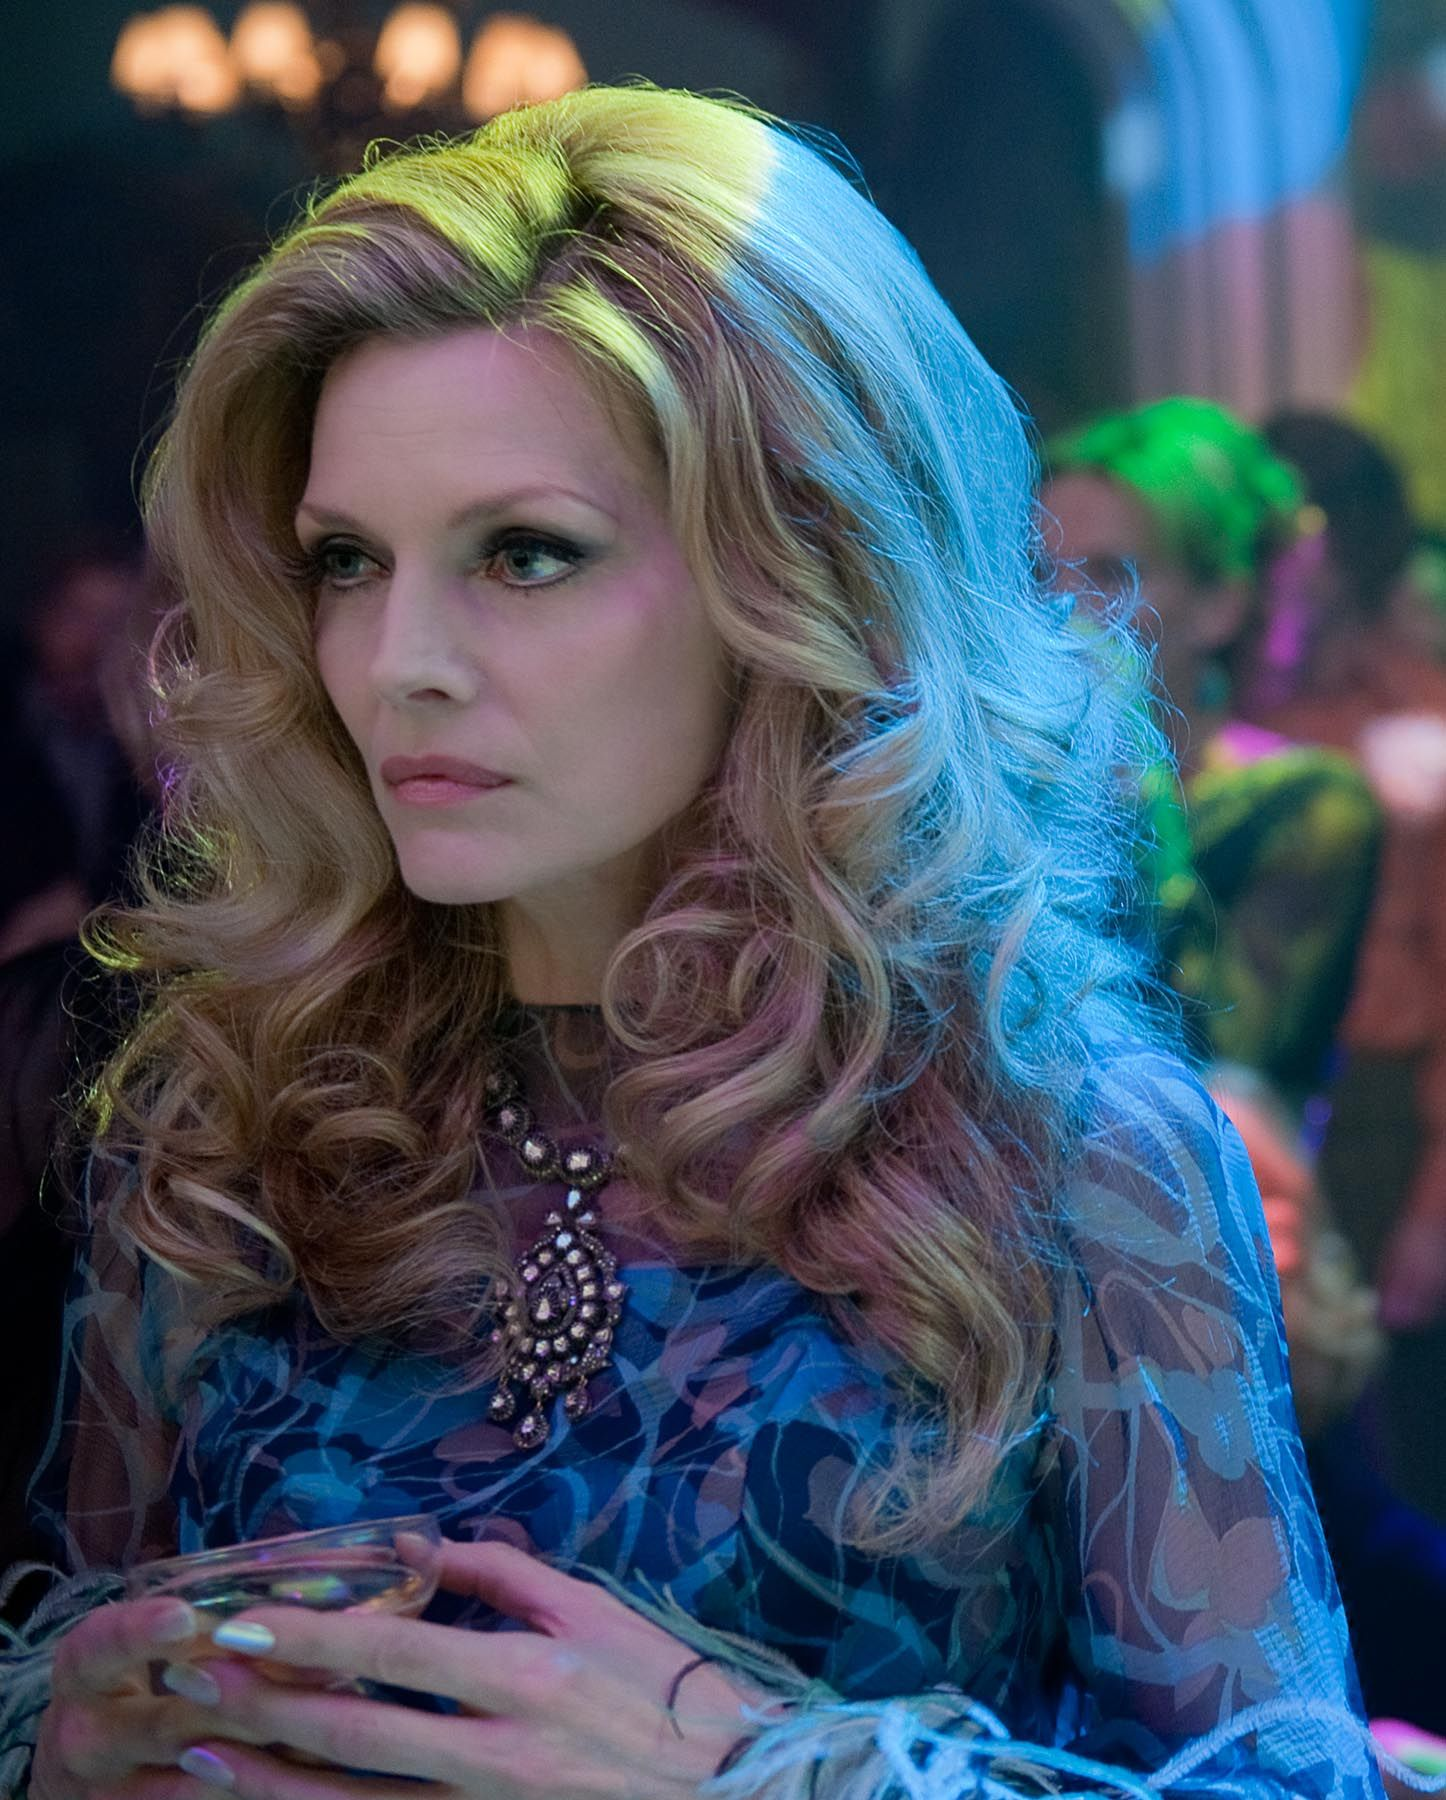 Michelle pfeiffer in Dark Shadows. Loved her hair and make up.